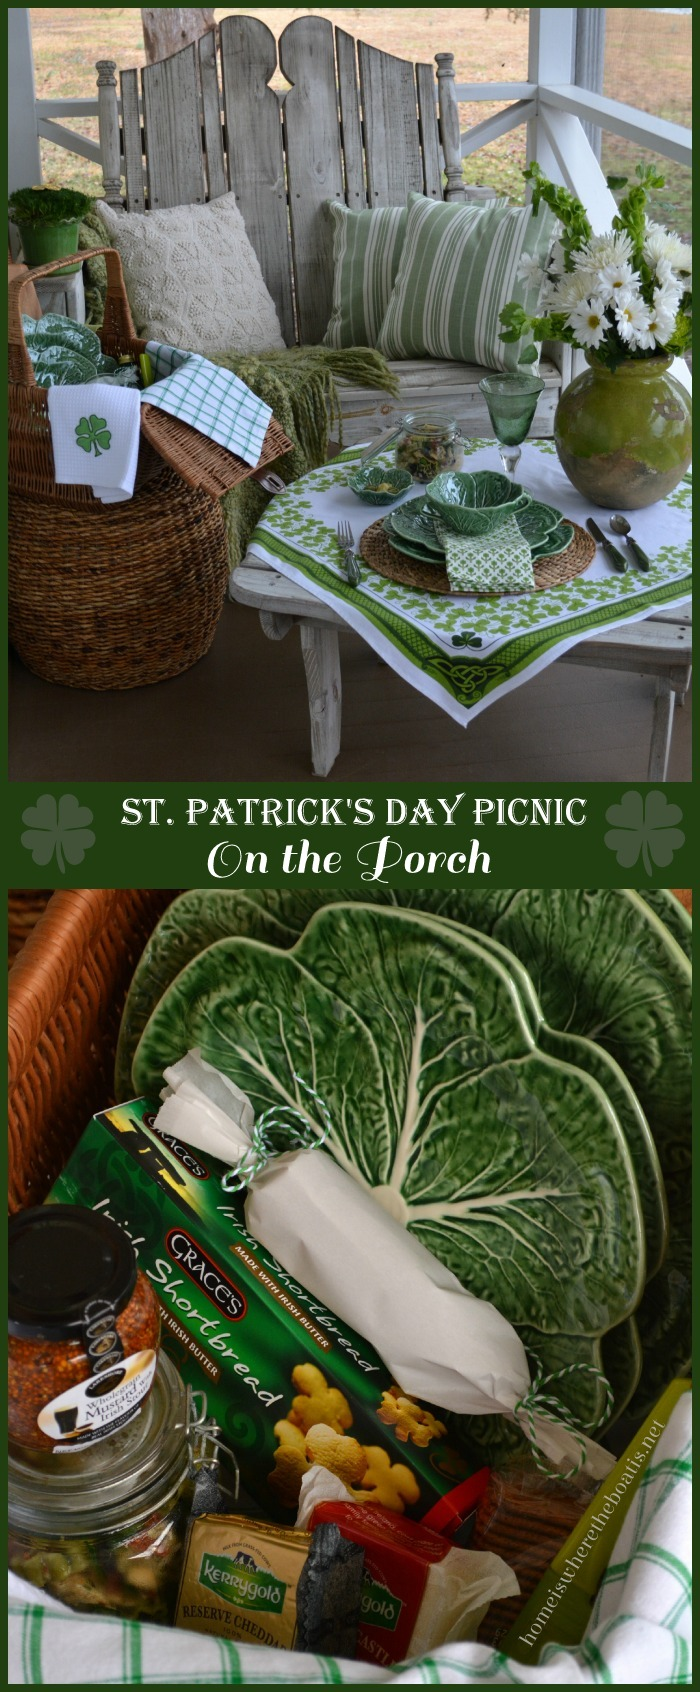 St. Patrick's Day Picnic on the Porch